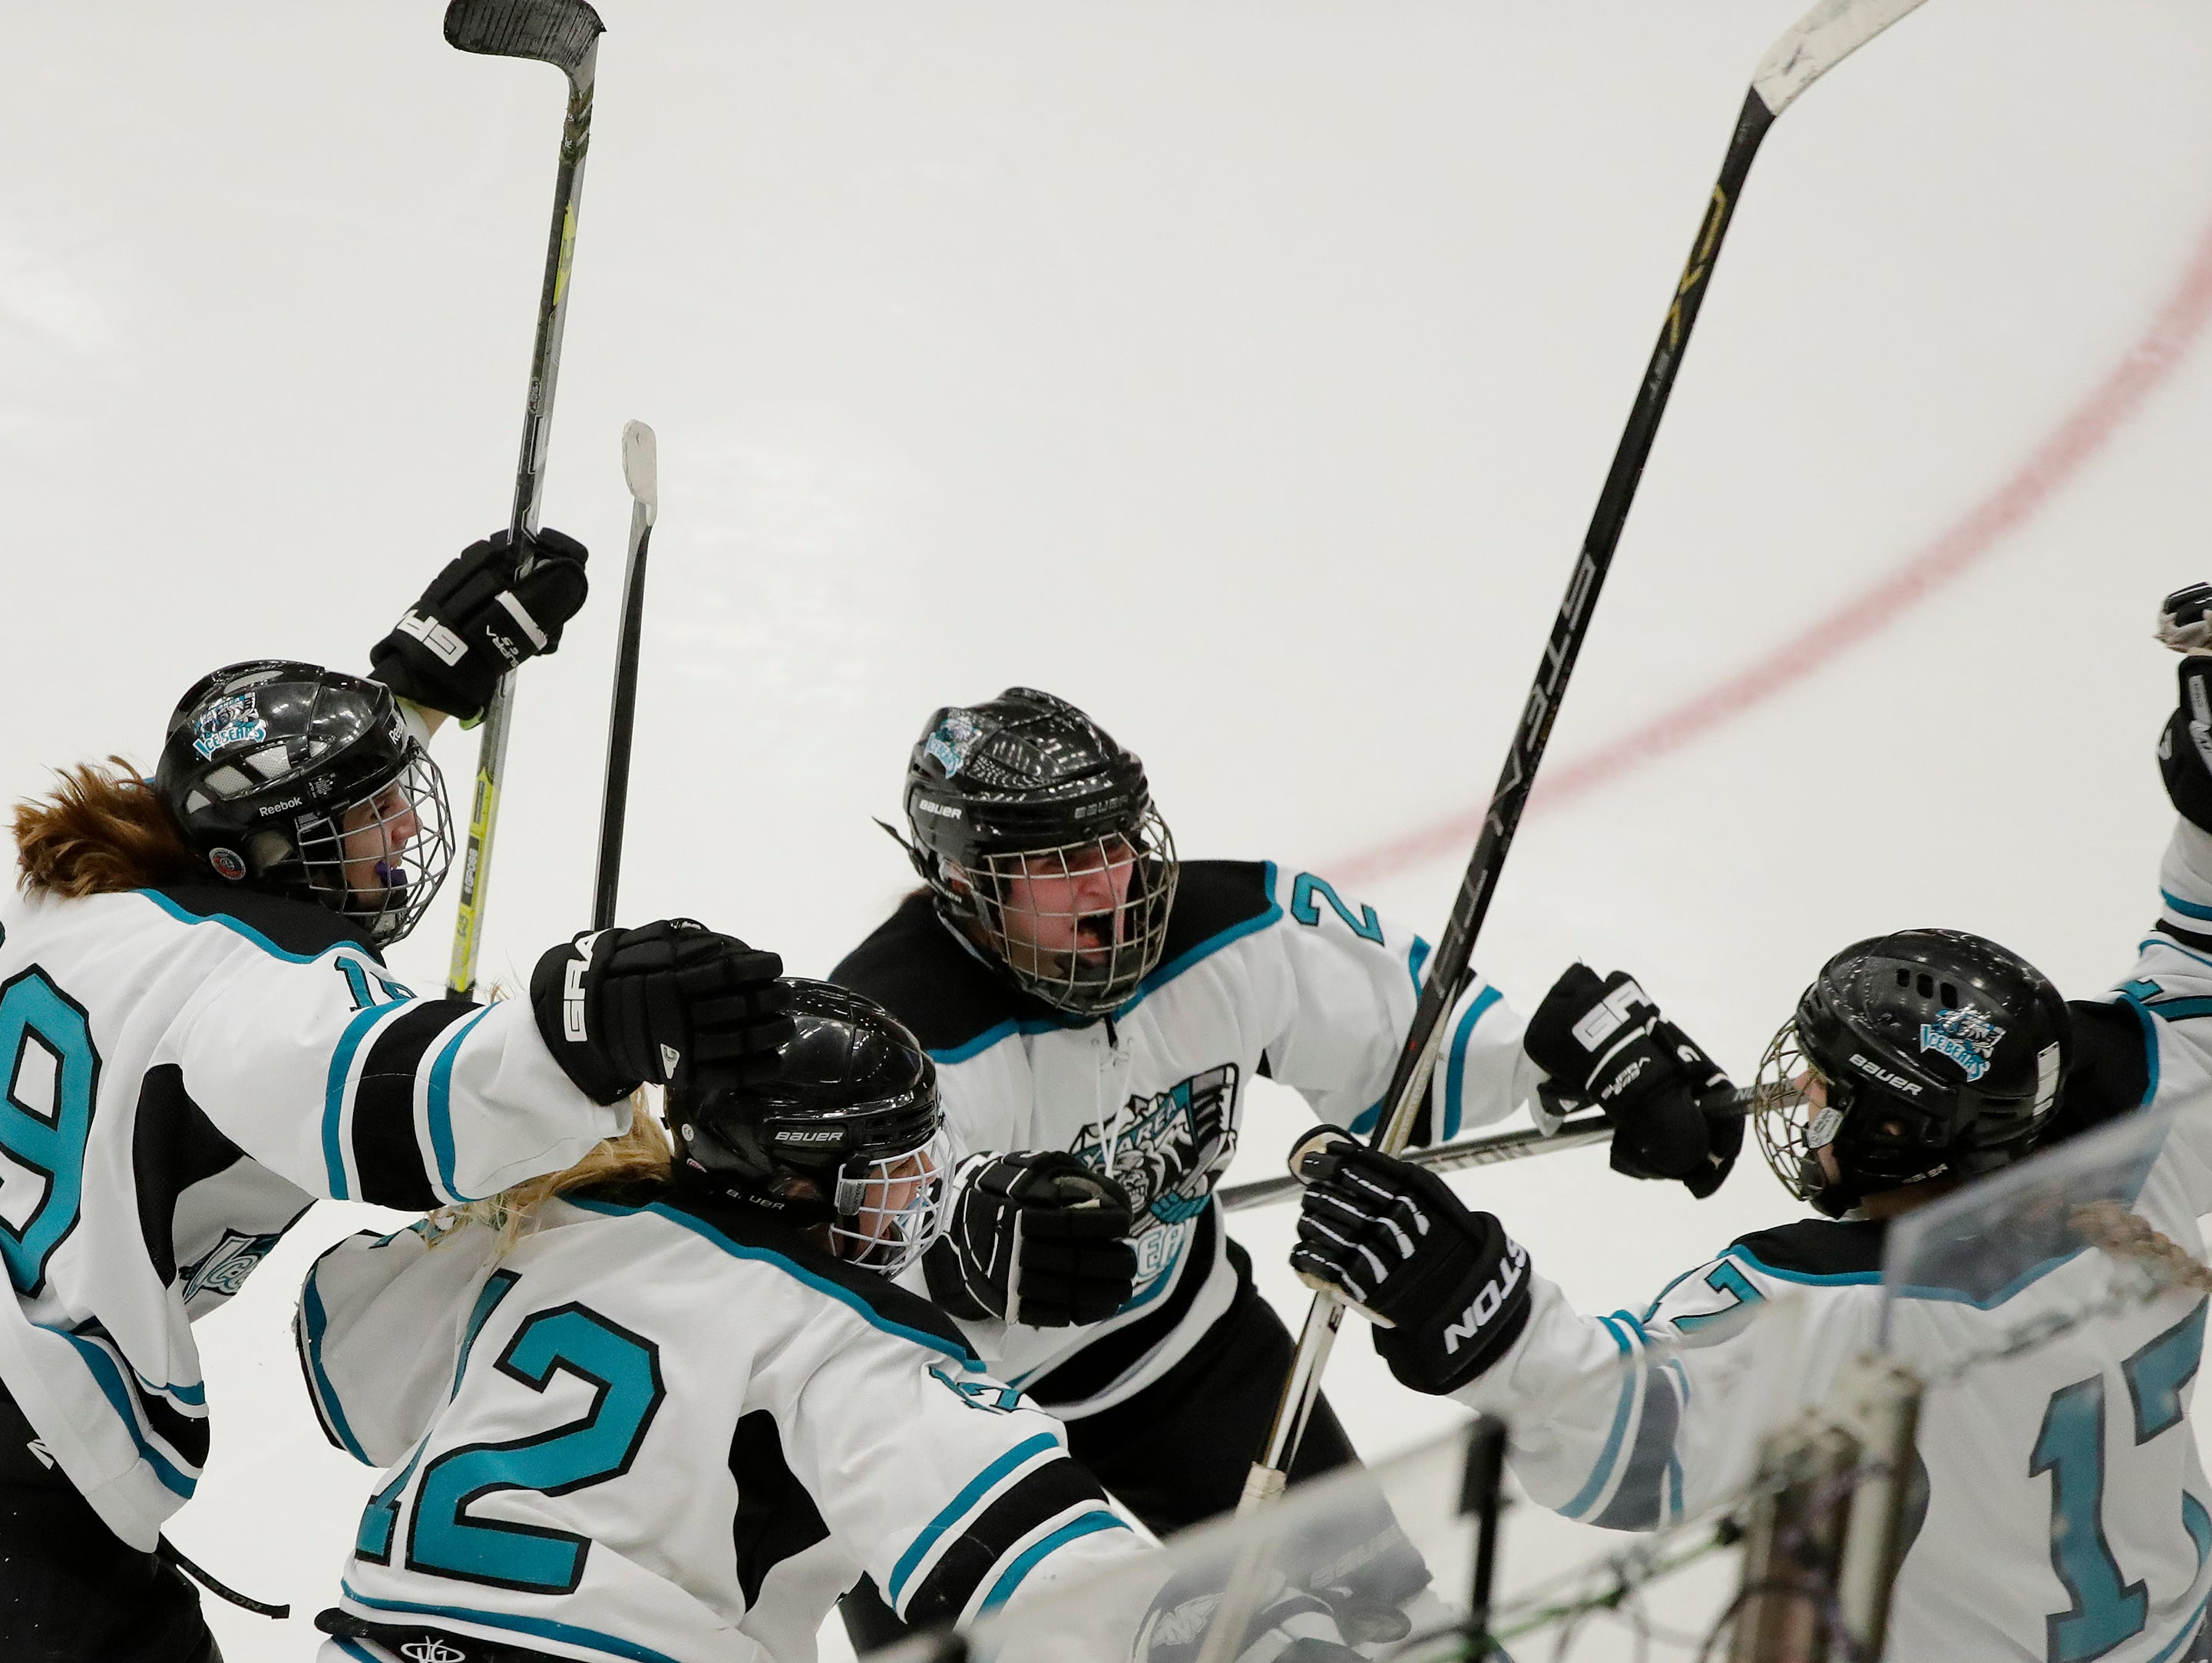 Bay Area Ice Bears players celebrate with forward Talia Boyea (17) (right) after Boyea scored against the Central Wisconsin Storm in the championship match at the 2017 State Hockey Tournament at Veterans Memorial Coliseum on Saturday, March 4, 2017, in Madison, Wis. The Storm won the match 2-1 in overtime. Adam Wesley/USA TODAY NETWORK-Wisconsin